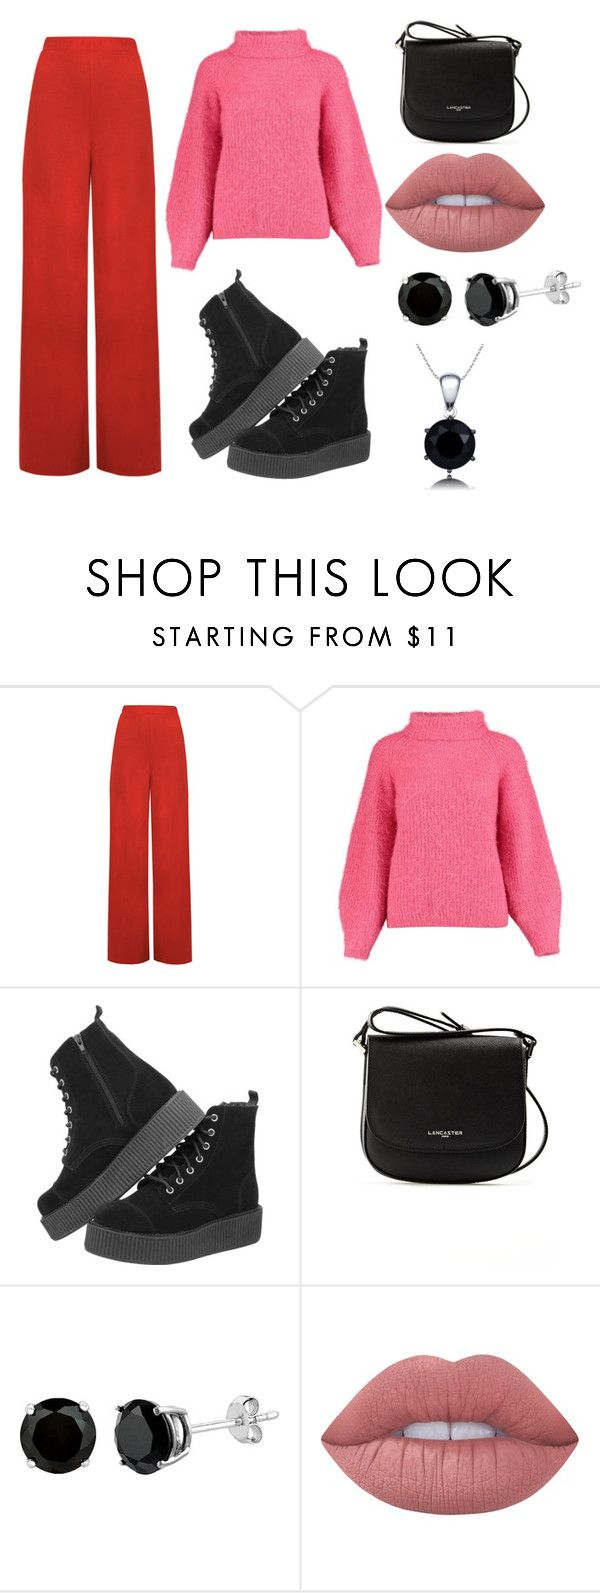 """""""Red with pink"""" by mariakarasik1995 ❤ liked on Polyvore featuring interior, interiors, interior design, home, home decor, interior decorating, WearAll, Lancaster, Lime Crime and colorchallenge"""